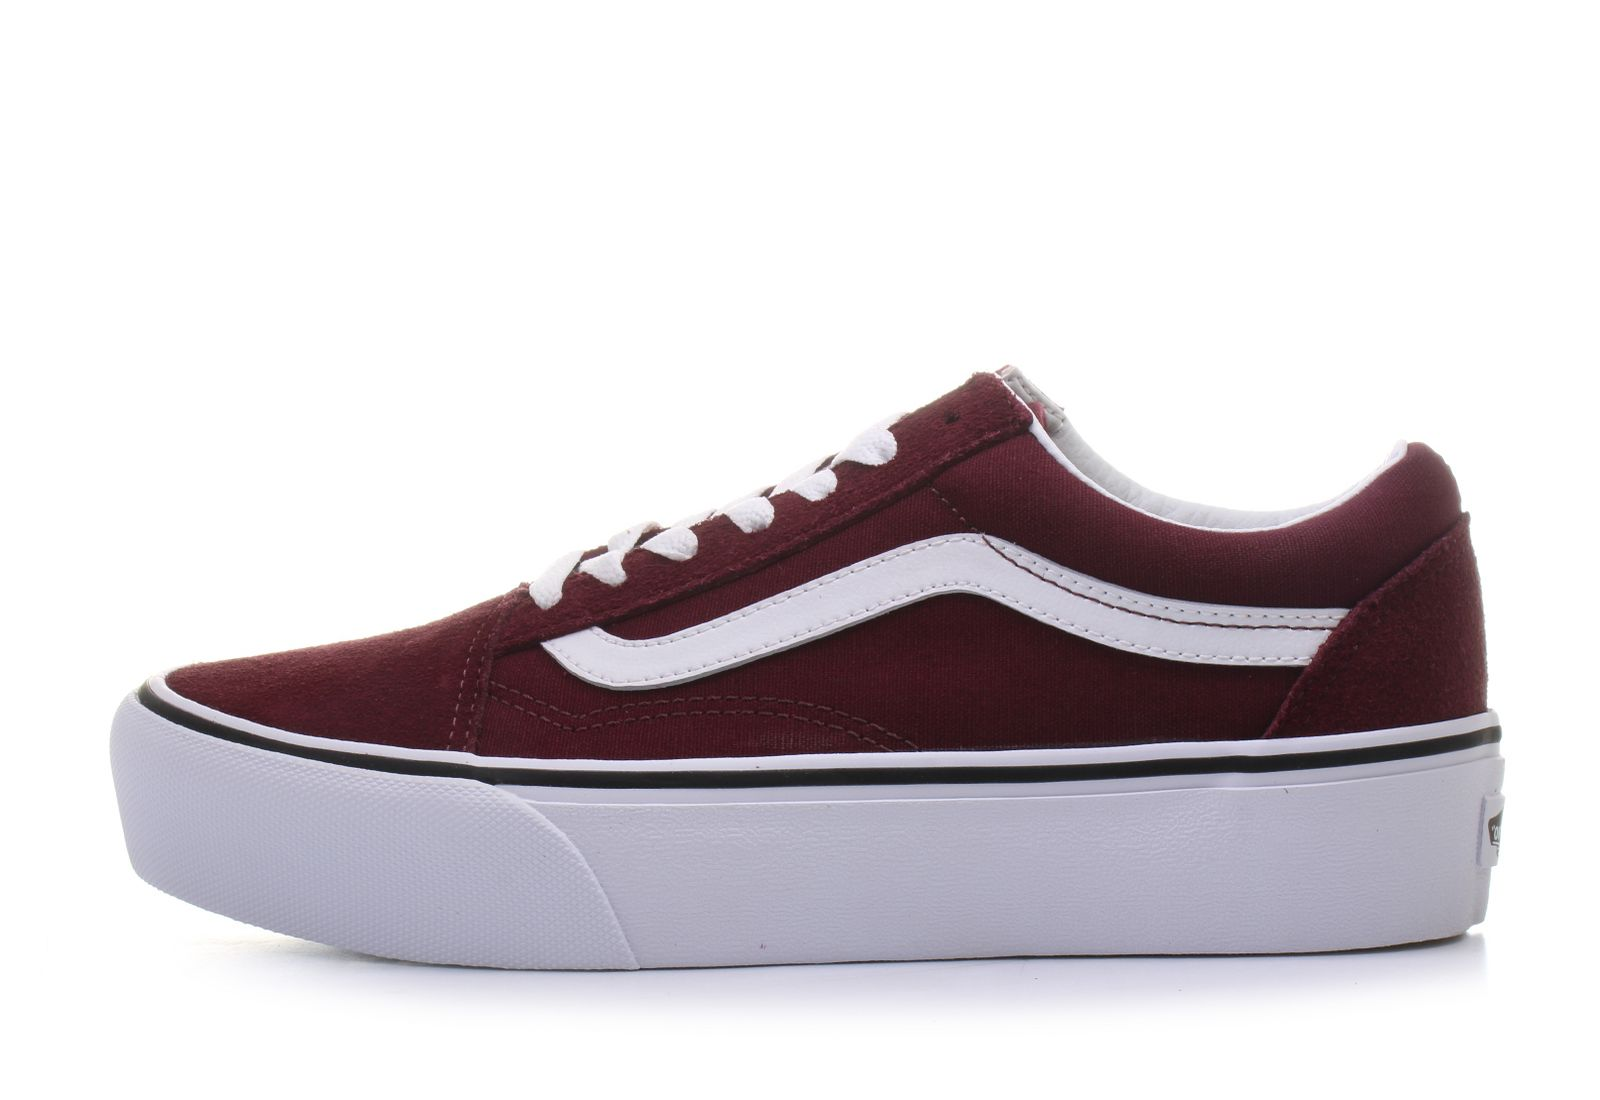 vans old skool wysokie